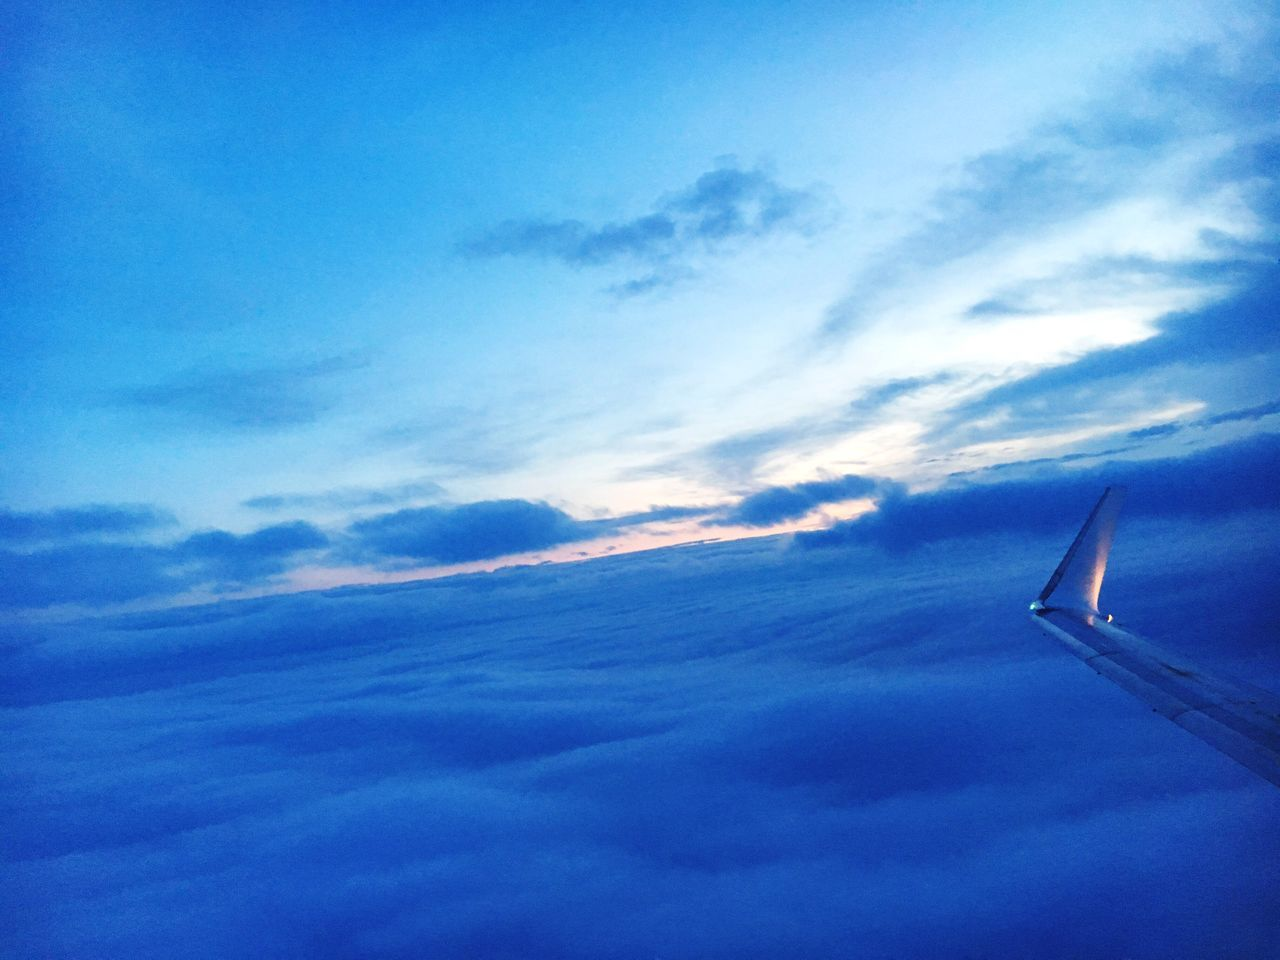 sky, airplane, cloud - sky, transportation, journey, beauty in nature, scenics, blue, nature, aerial view, cloudscape, airplane wing, travel, no people, flying, mode of transport, tranquil scene, tranquility, outdoors, aircraft wing, air vehicle, sky only, mid-air, sunset, day